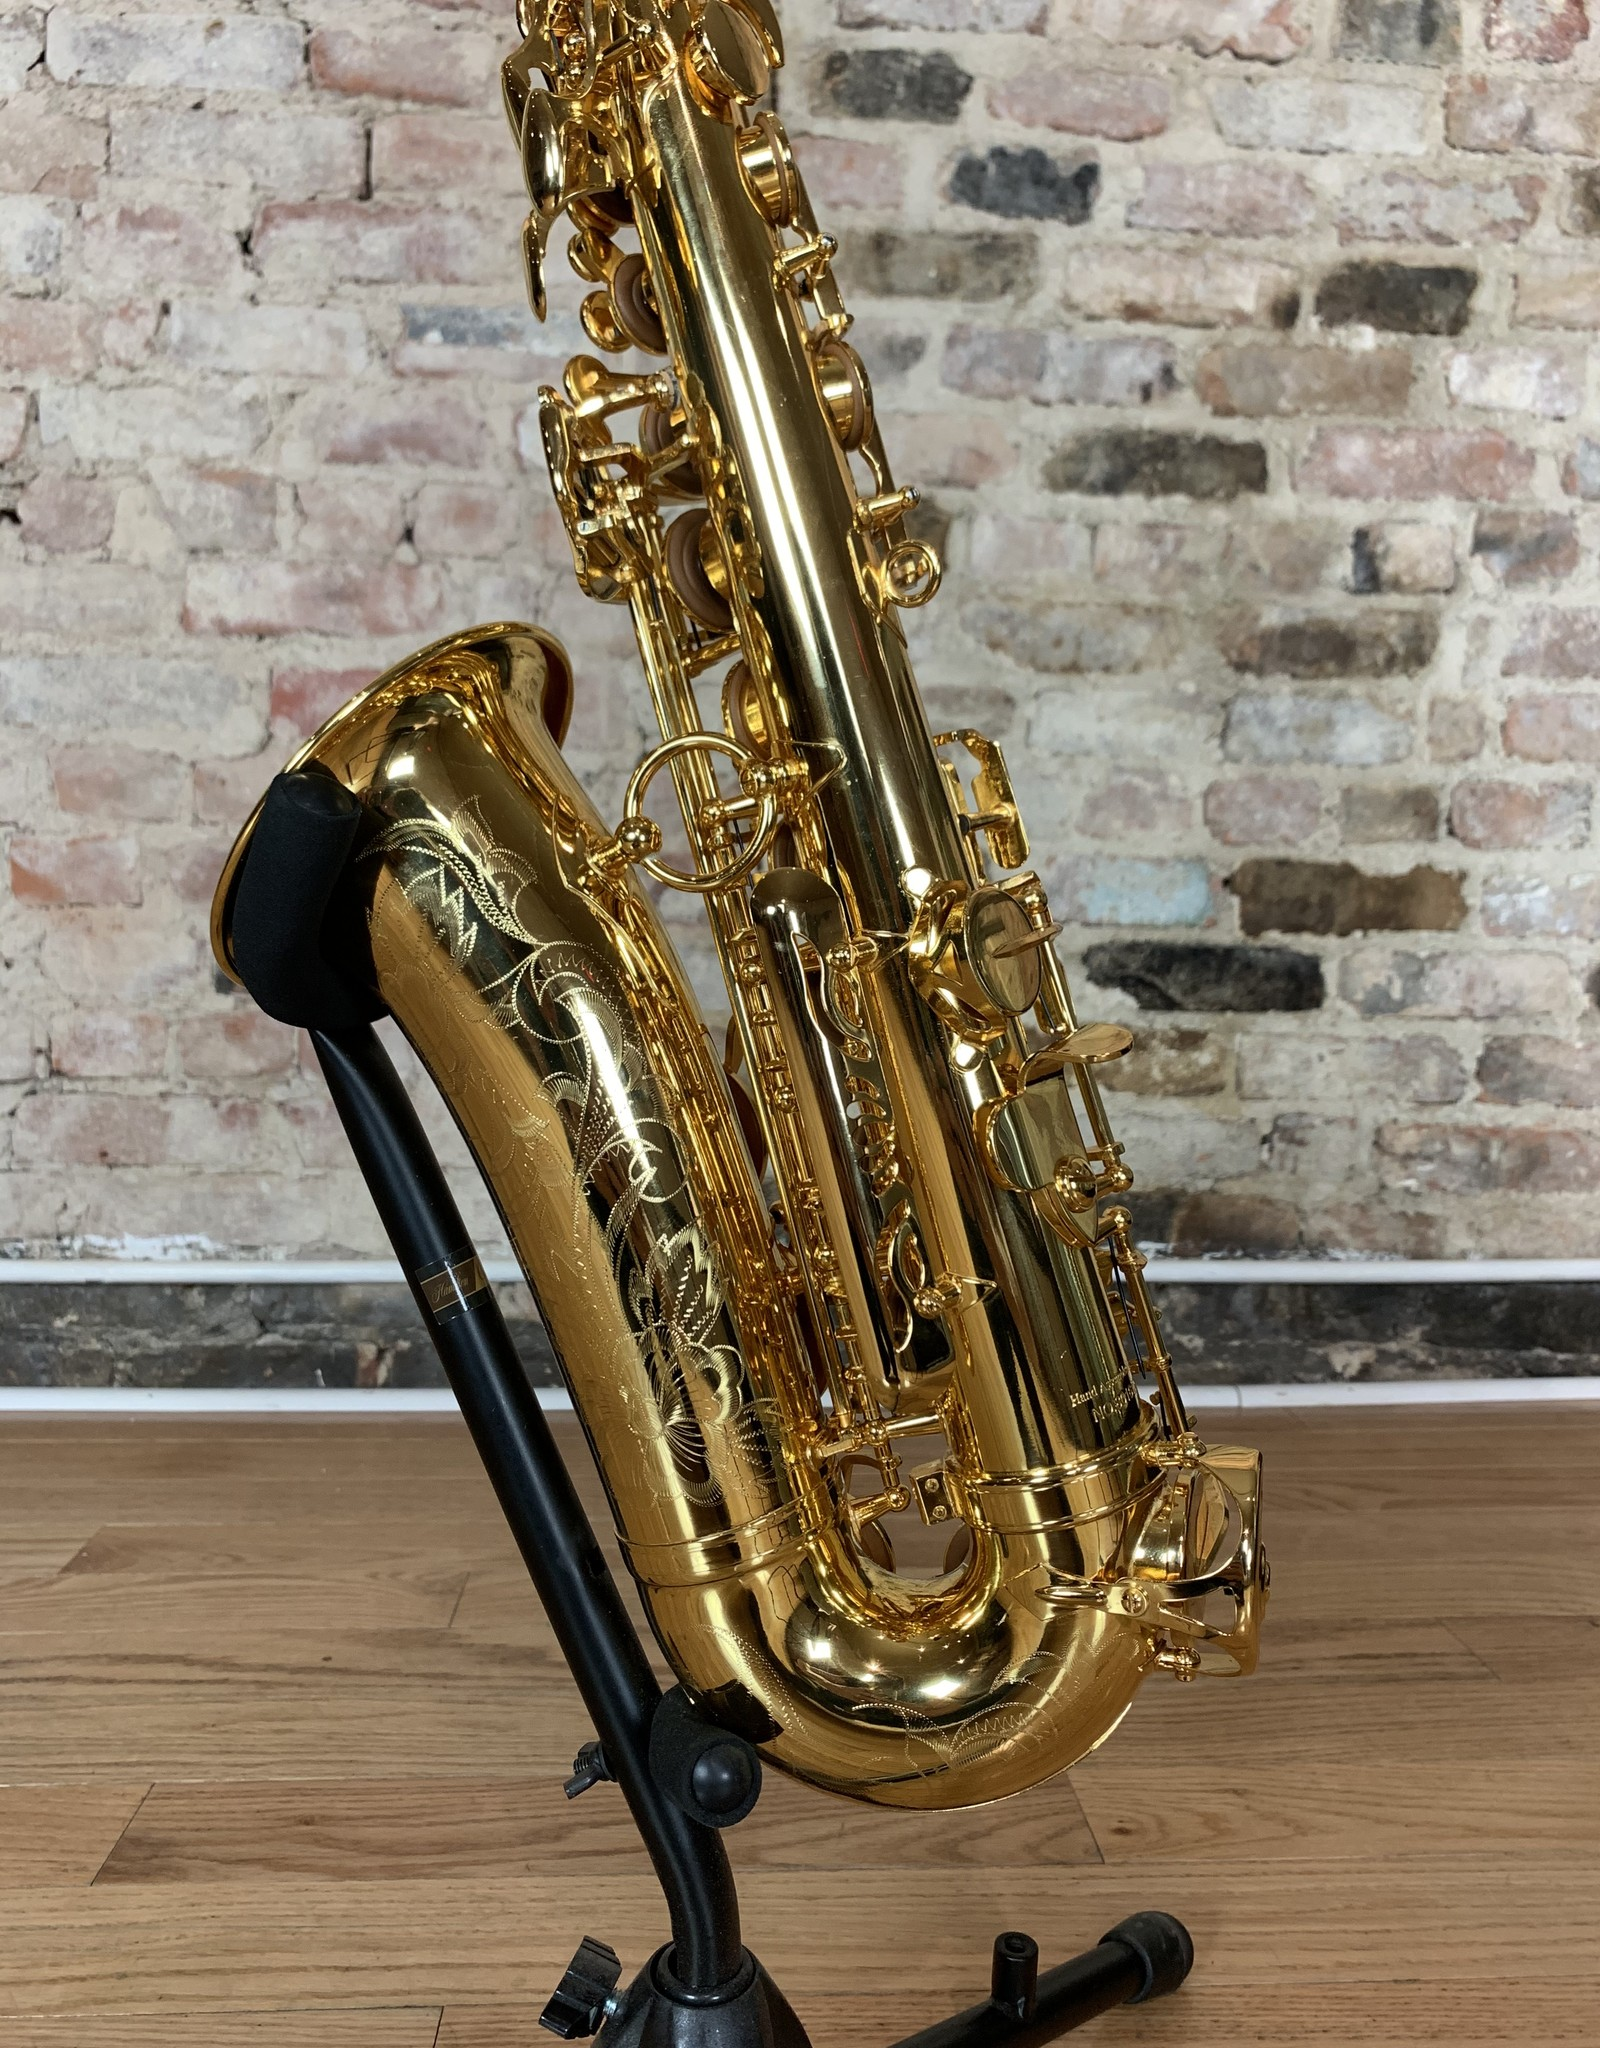 JL Woodwinds JL Woodwinds New York Signature Series 18k Gold Plated Alto Saxophone